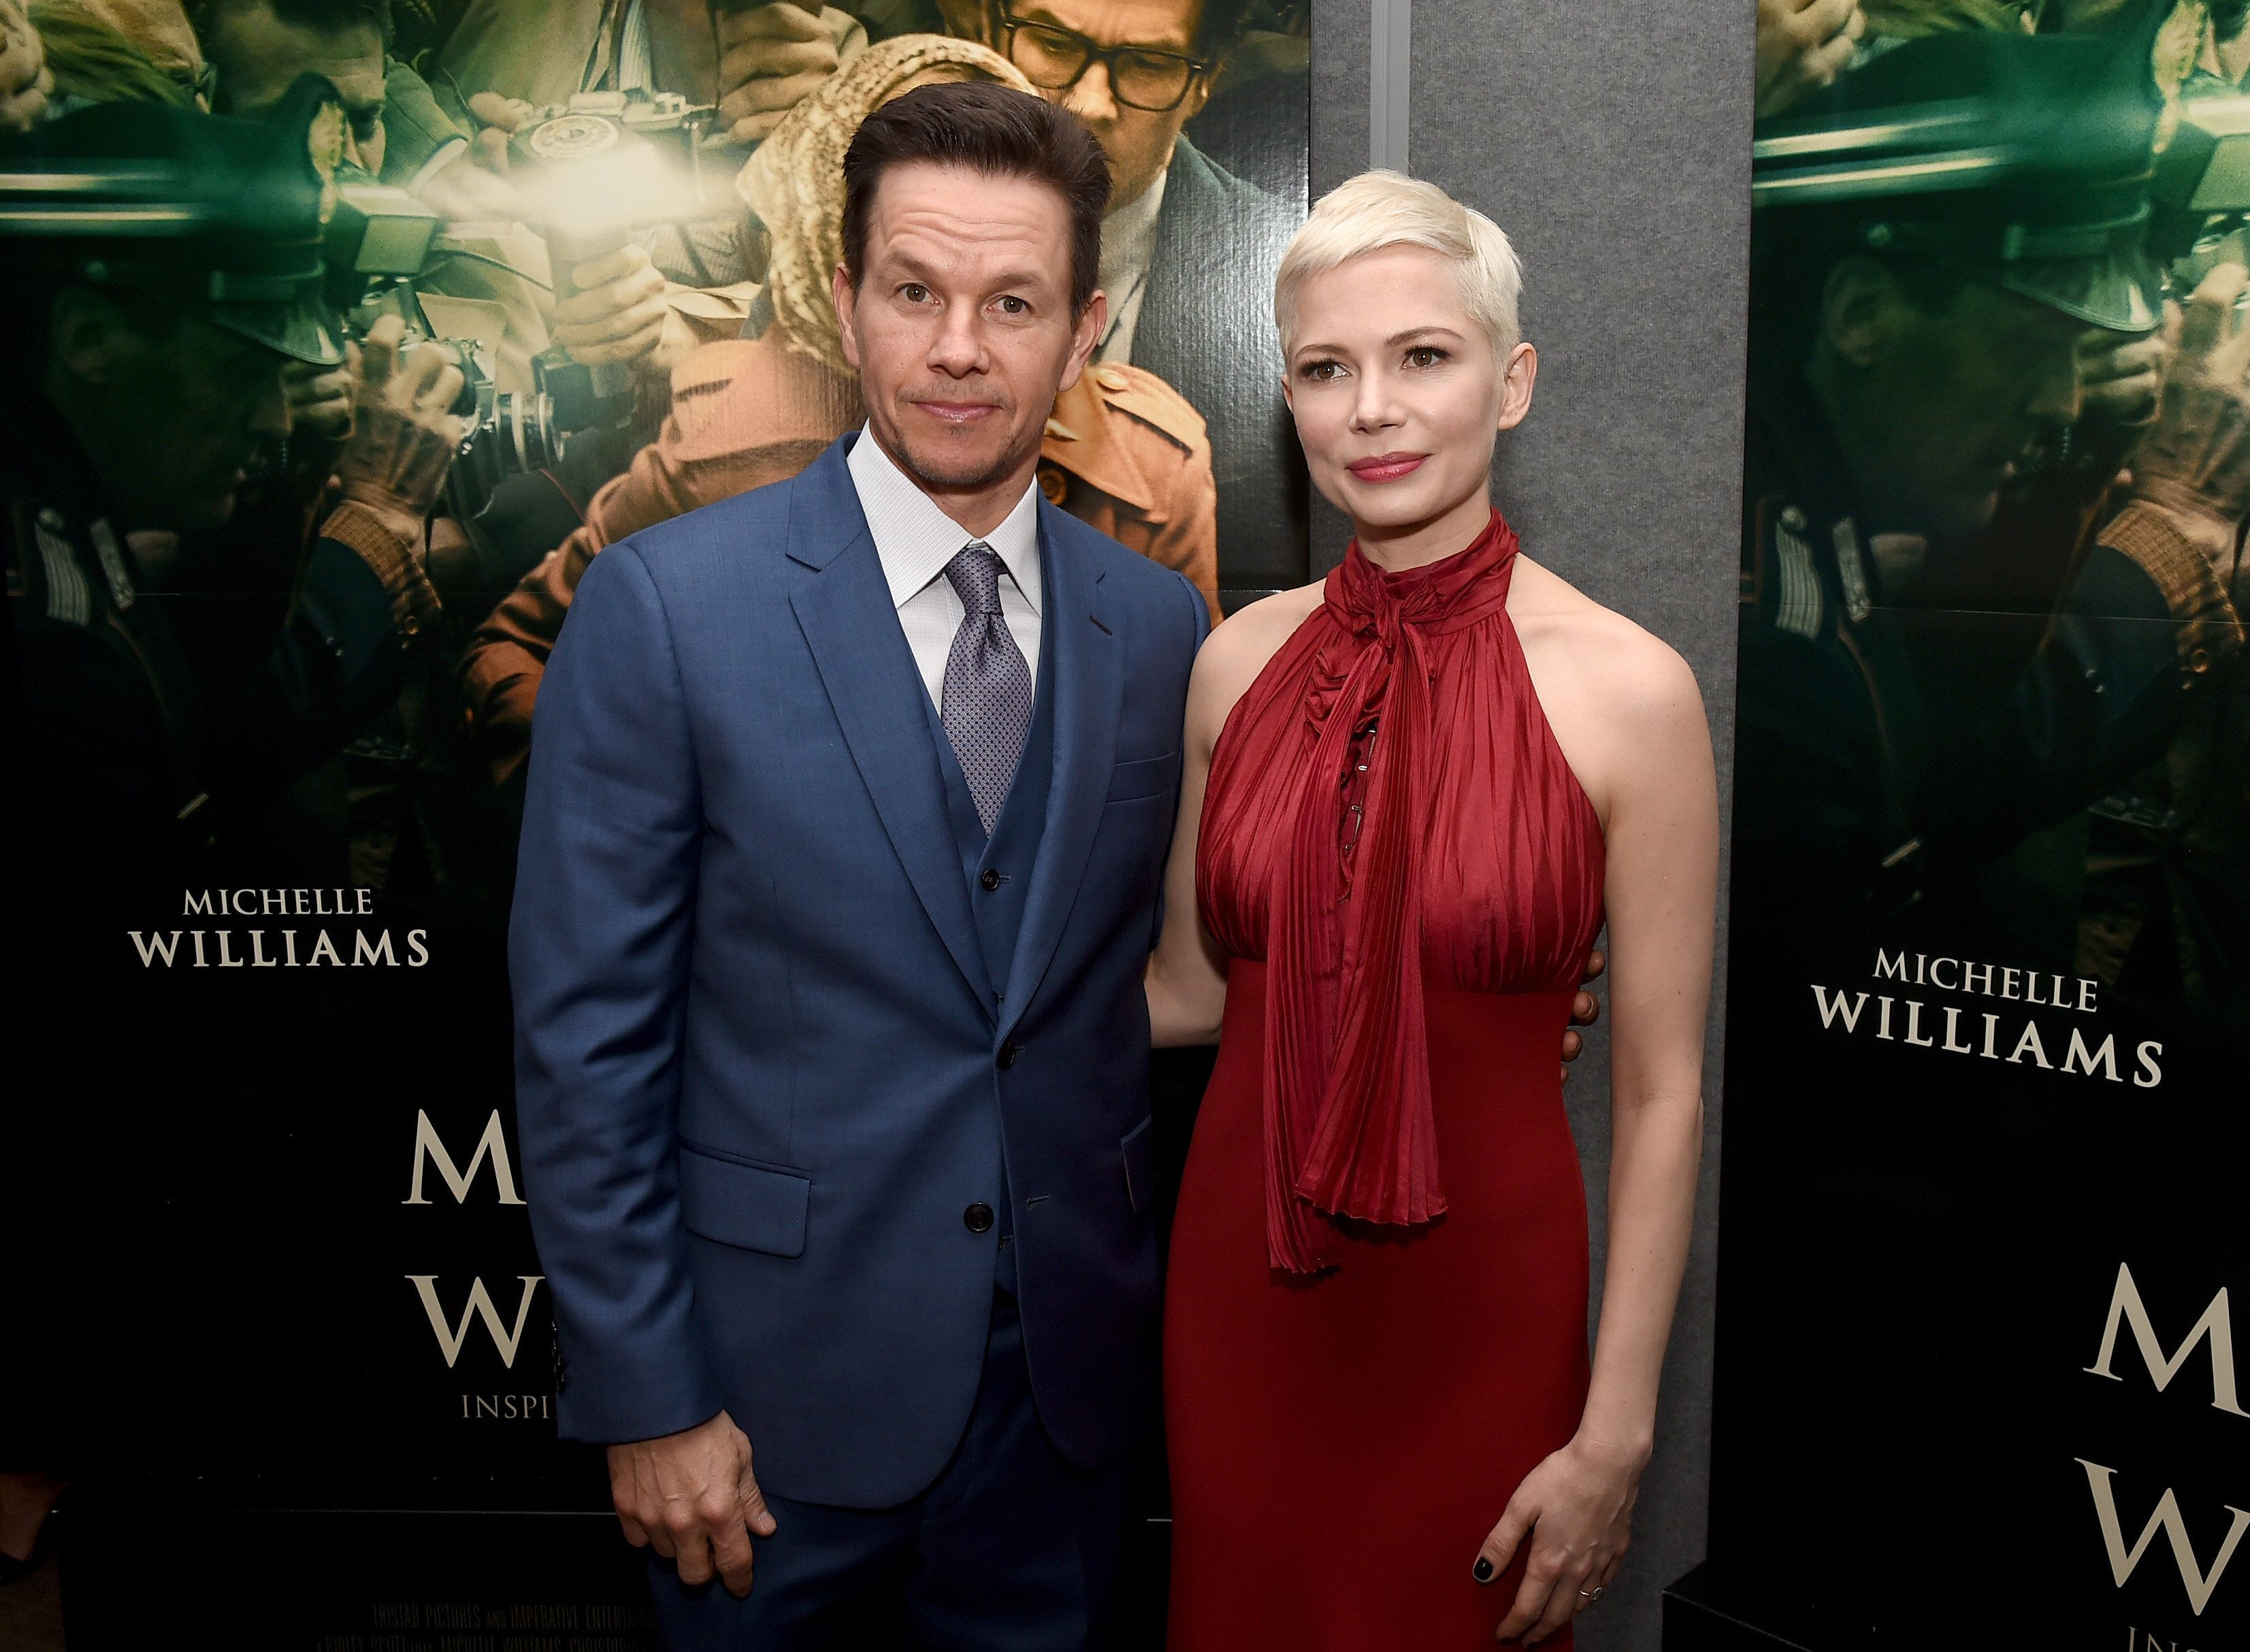 BEVERLY HILLS, CA - DECEMBER 18:  Mark Wahlberg (L) and Michelle Williams attend the premiere of Sony Pictures Entertainment's 'All The Money In The World' at Samuel Goldwyn Theater on December 18, 2017 in Beverly Hills, California.  (Photo by Kevin Winter/Getty Images)